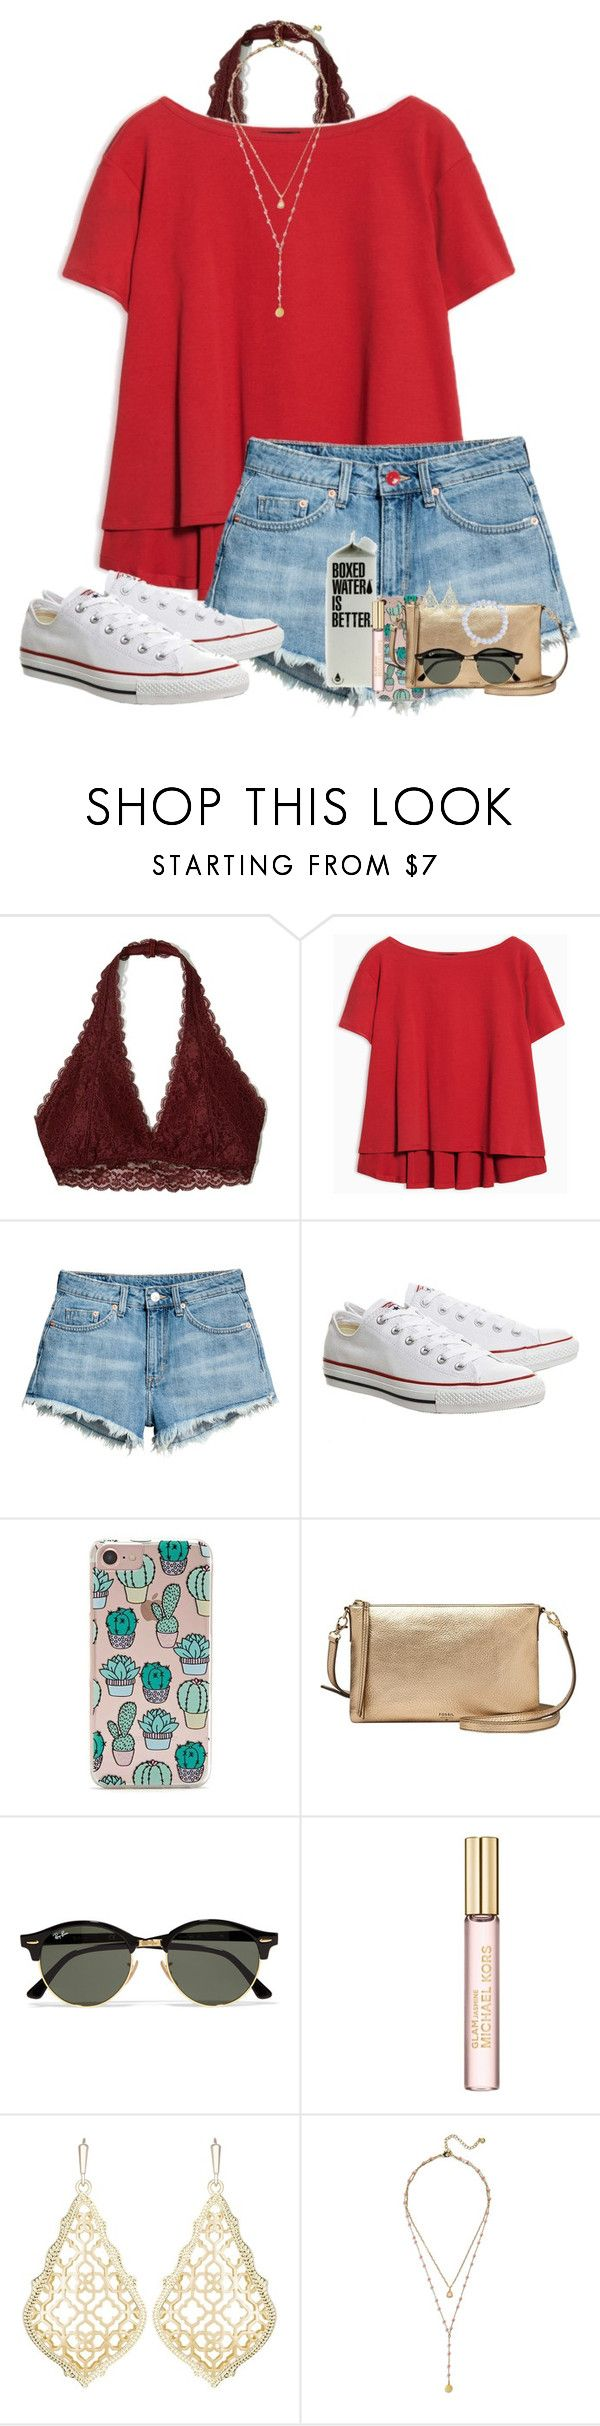 """Not a happy camper y'all"" by auburnlady ❤ liked on Polyvore featuring Hollister Co., Max&Co., H&M, Topshop, Forever 21, FOSSIL, Ray-Ban, Michael Kors, Kendra Scott and BaubleBar"